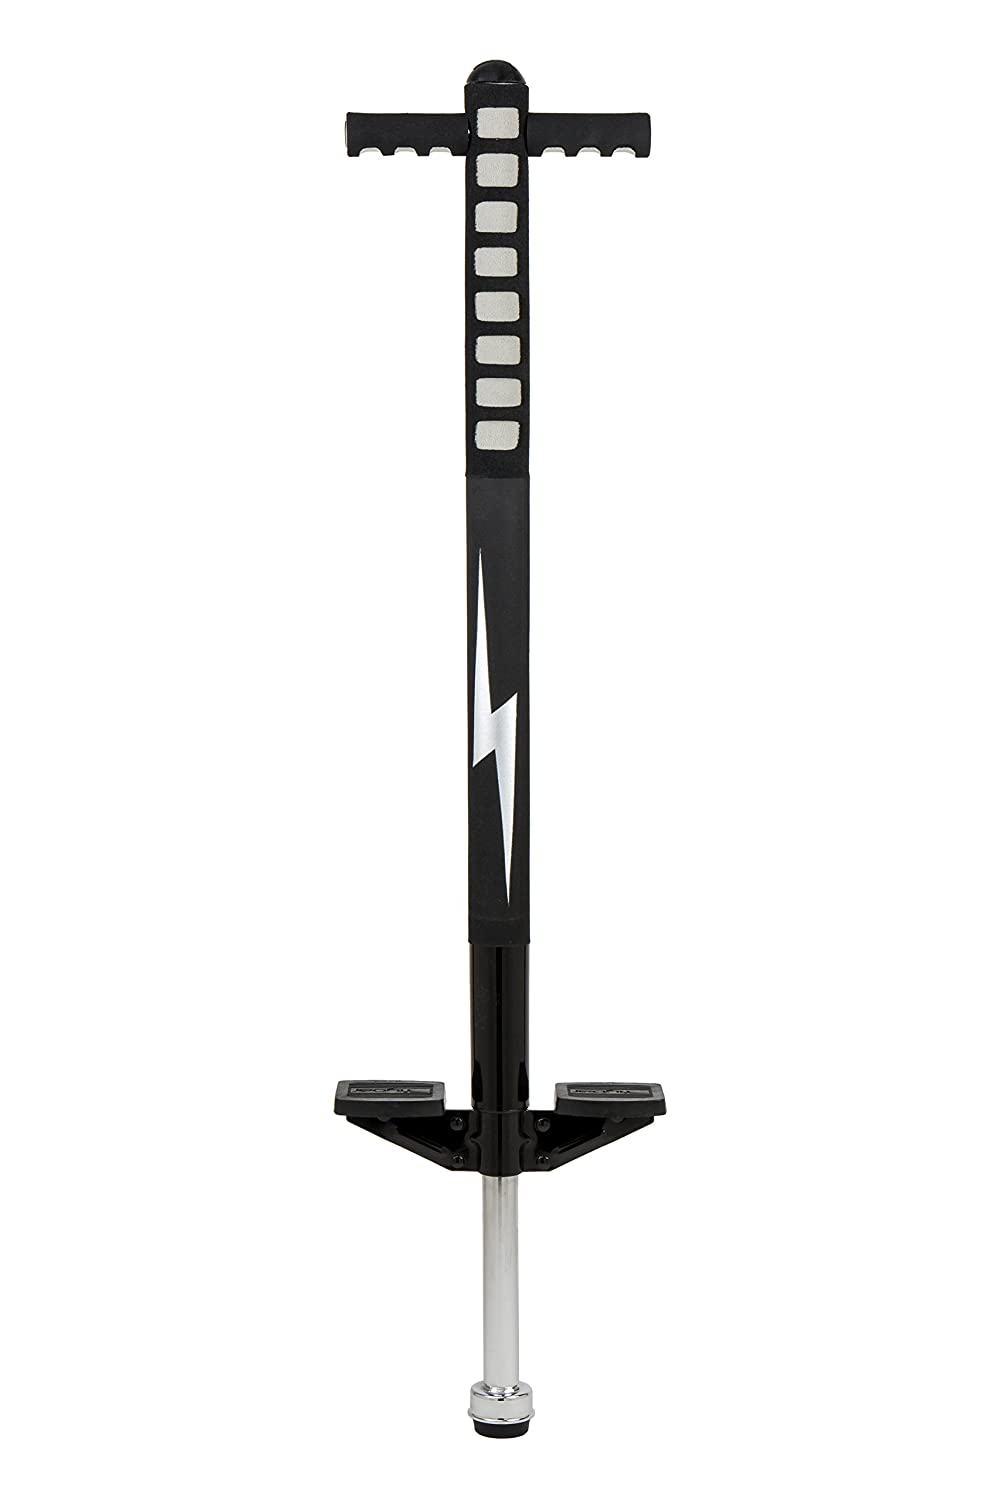 Flybar Foam Maverick Pogo Stick for Kids Ages 5+